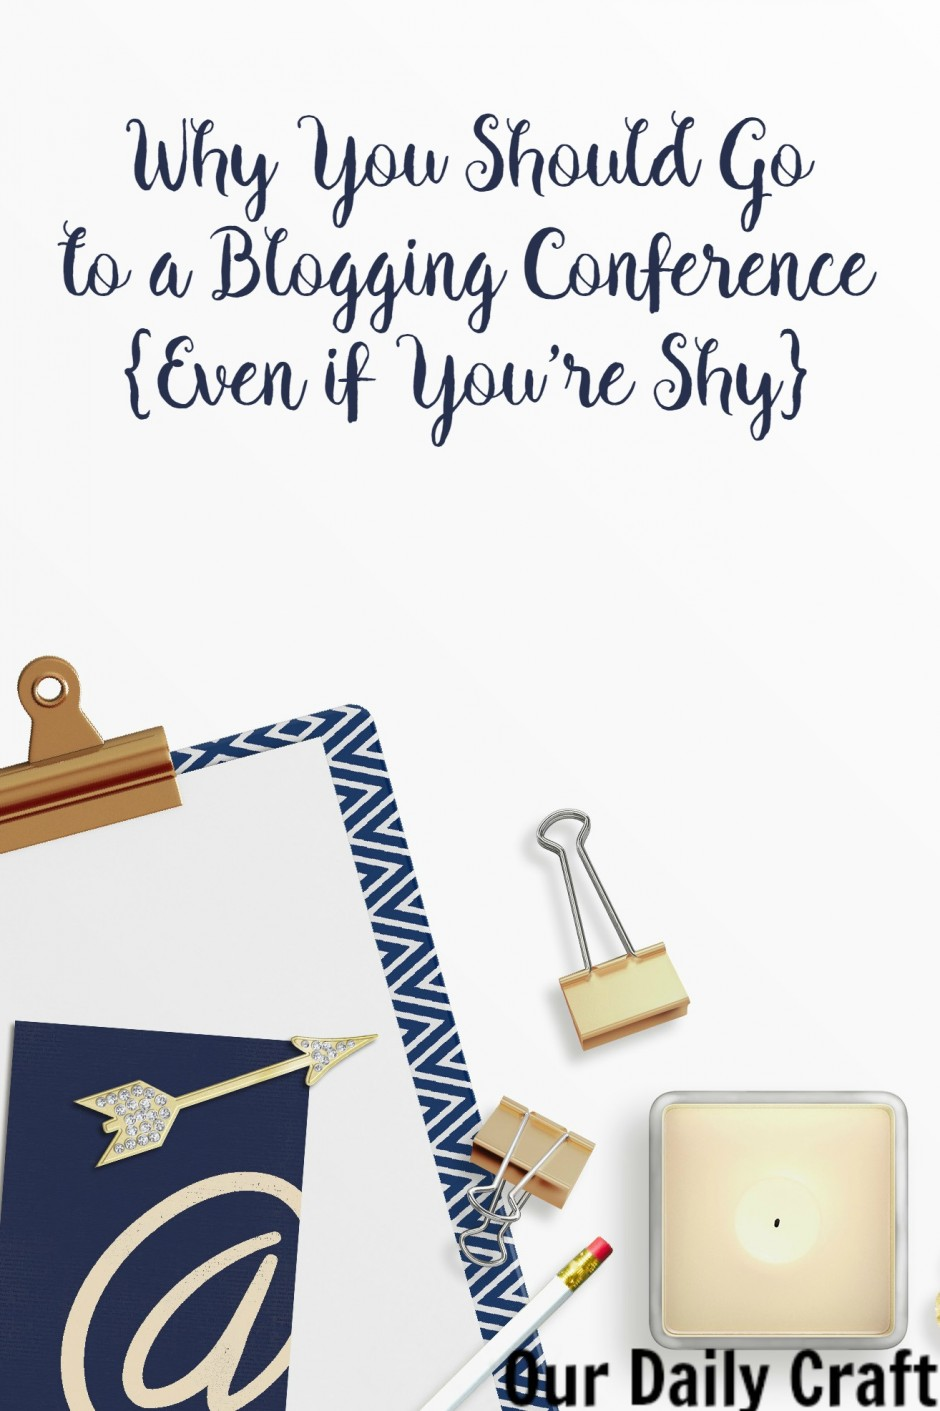 Why you should go to a blogging conference even if you're shy.